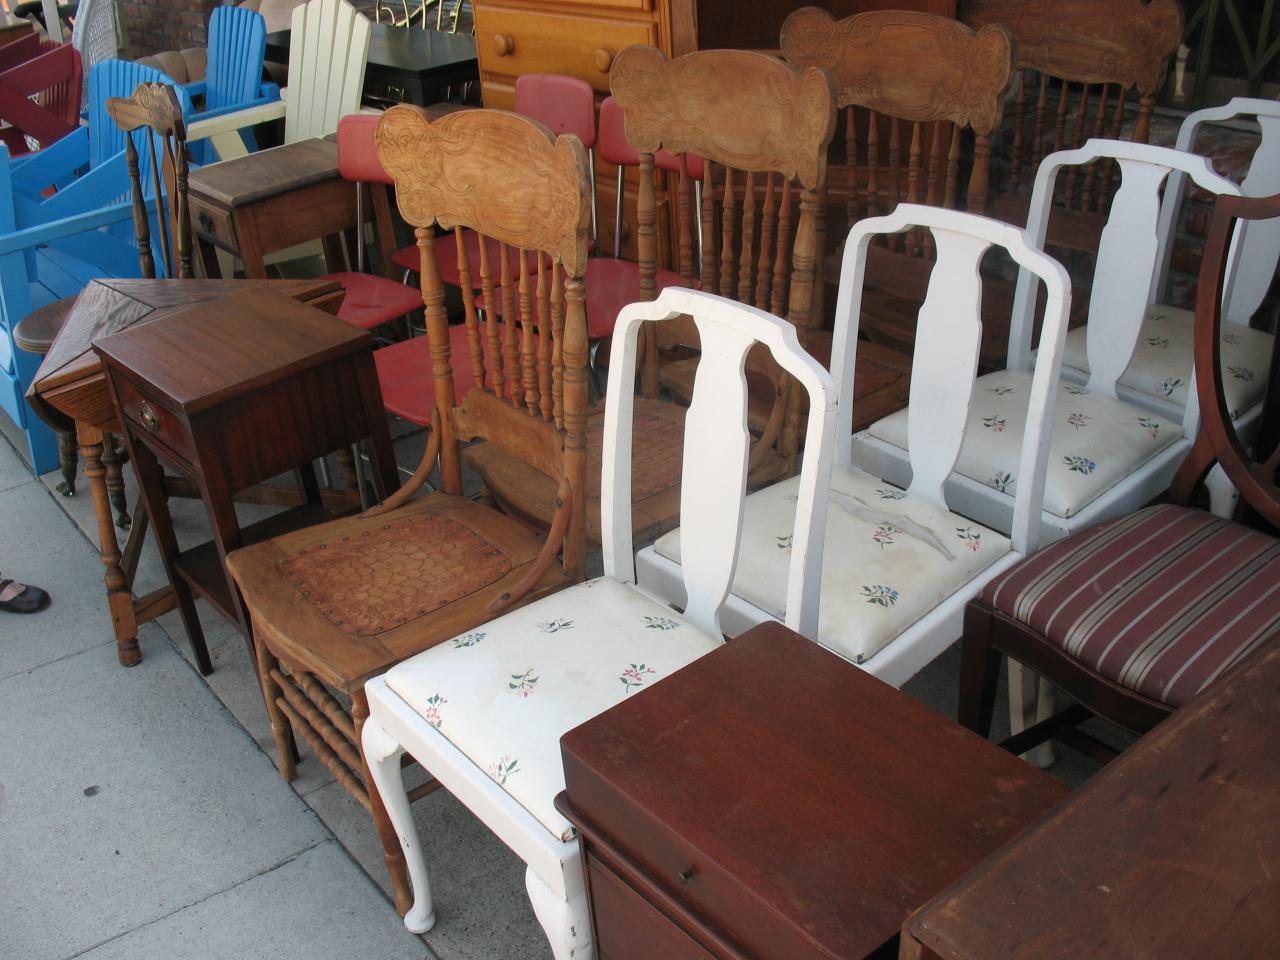 ... Chairs ... - Cheap - Thrift Shop @ Cheap, 25408 Narbonne Ave., Lomita, Torrance